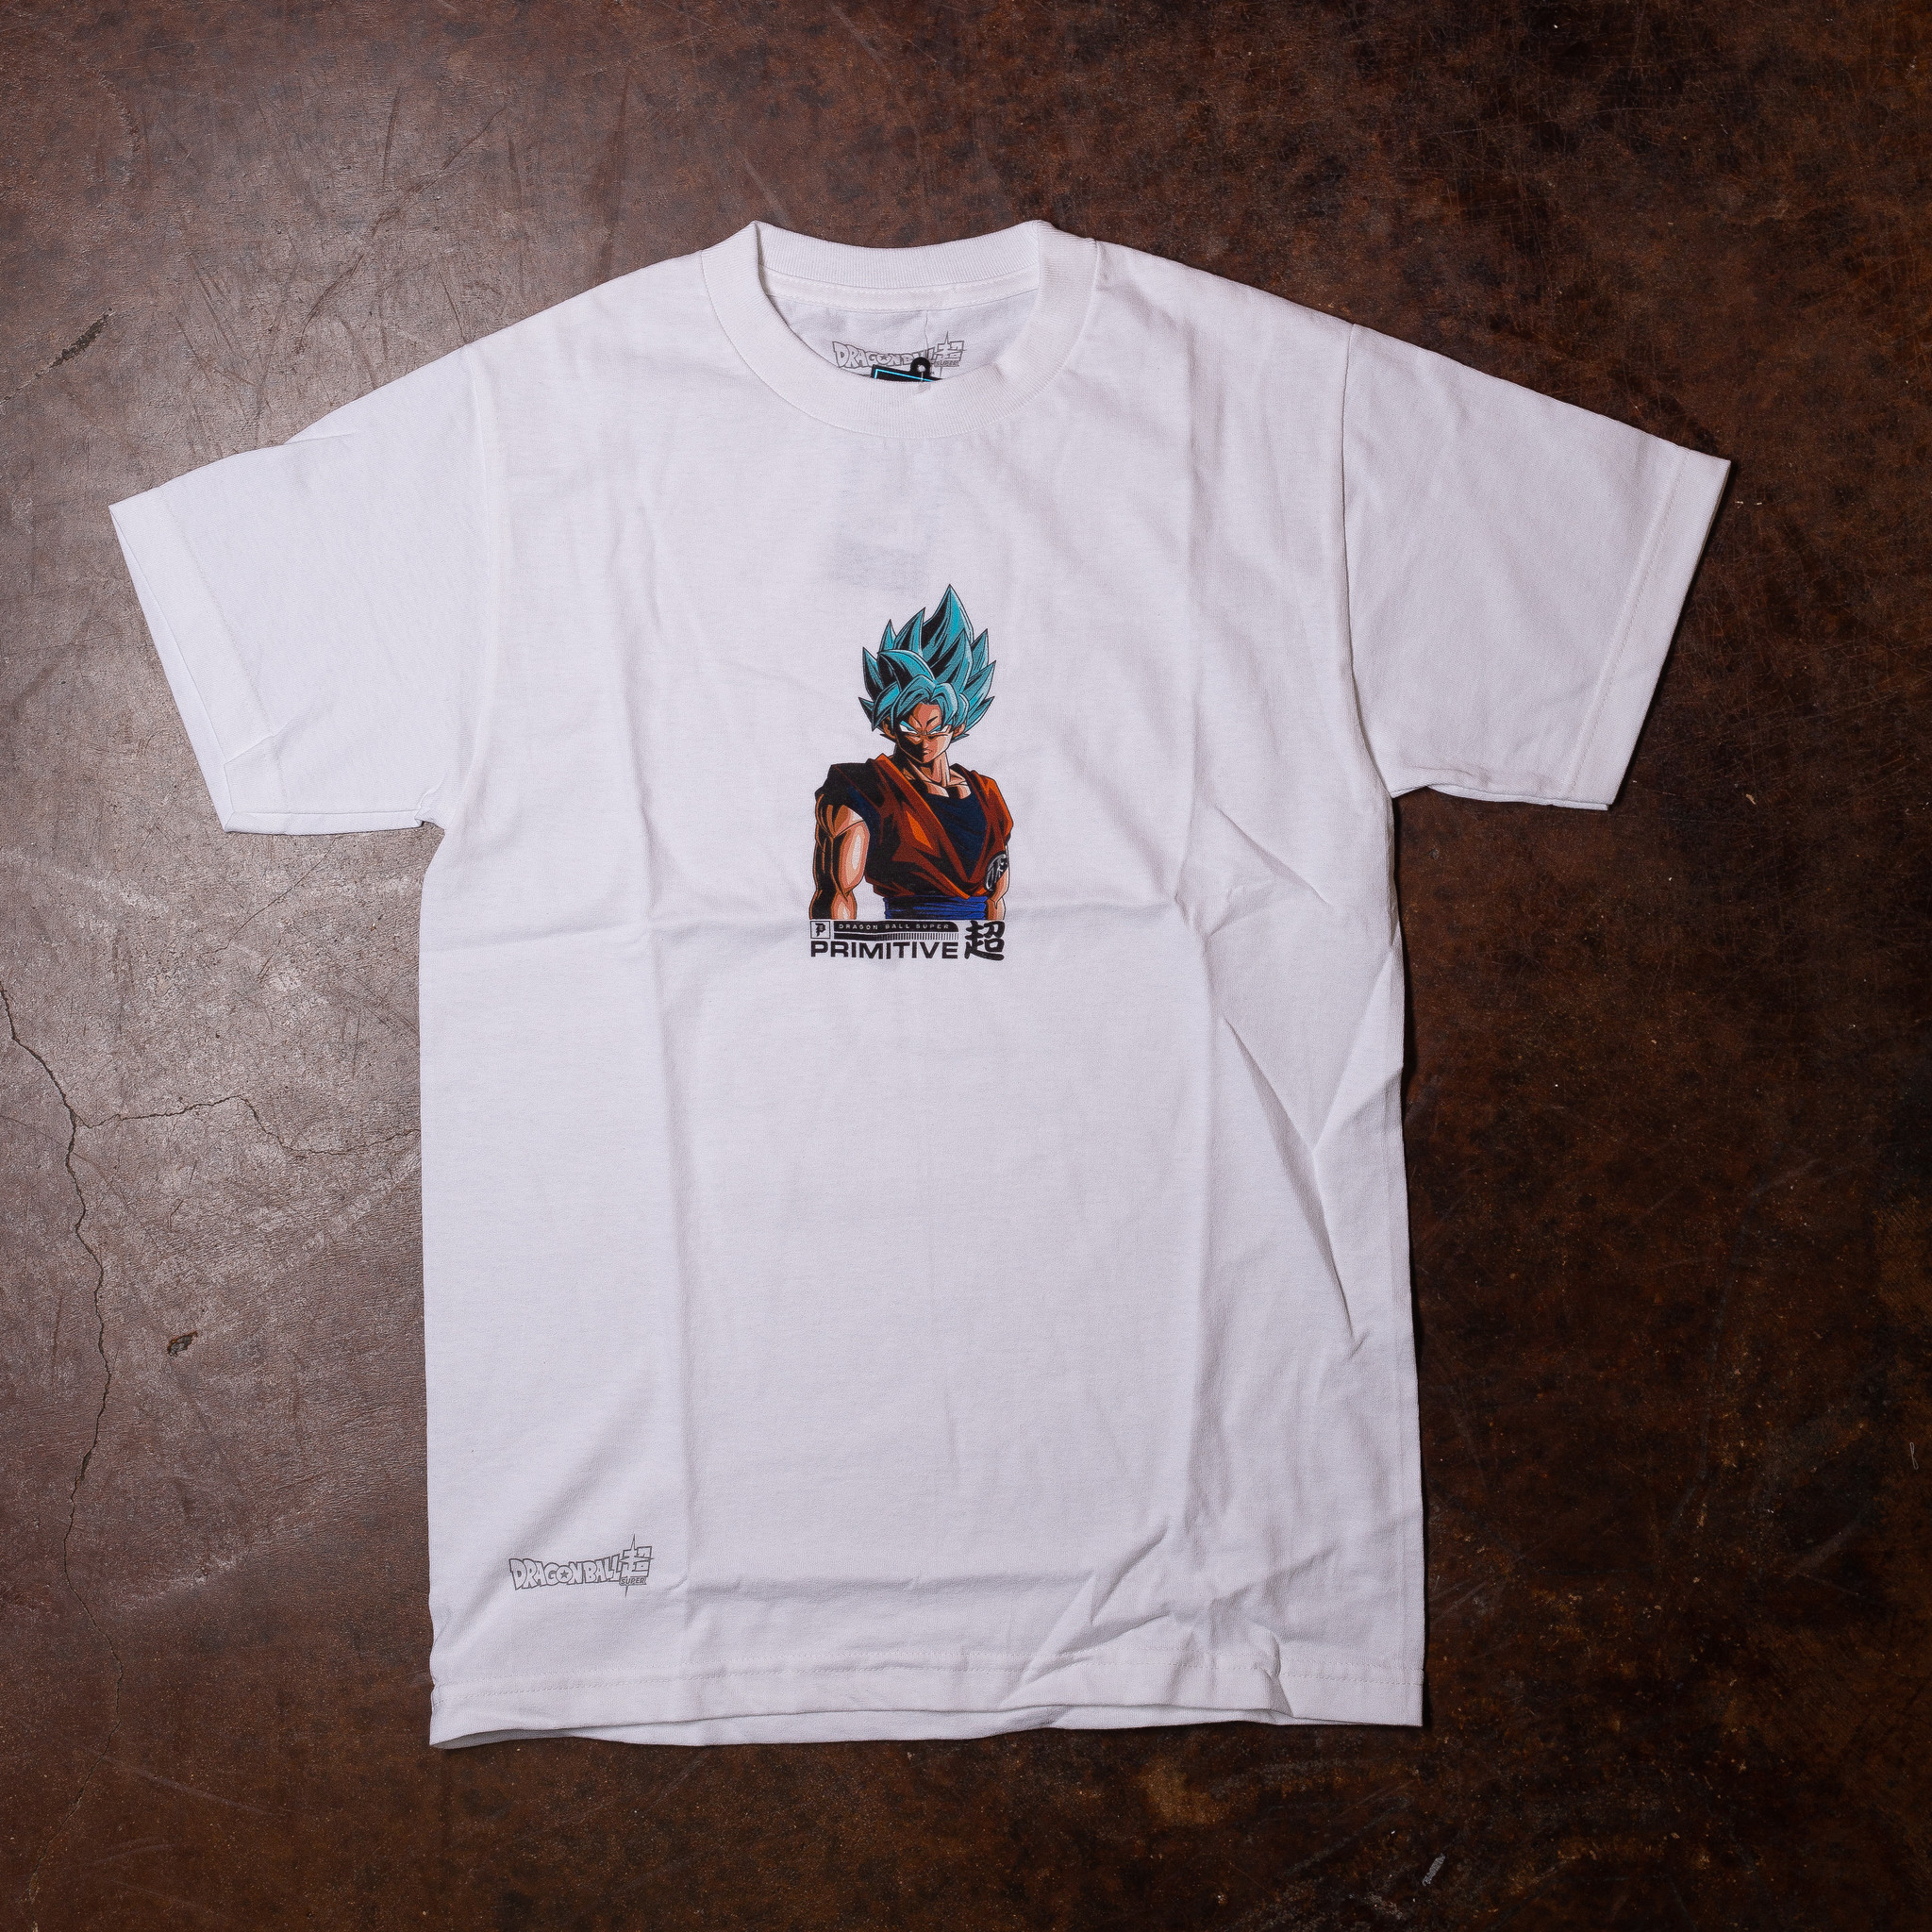 Primitive Shadow Goku Tee